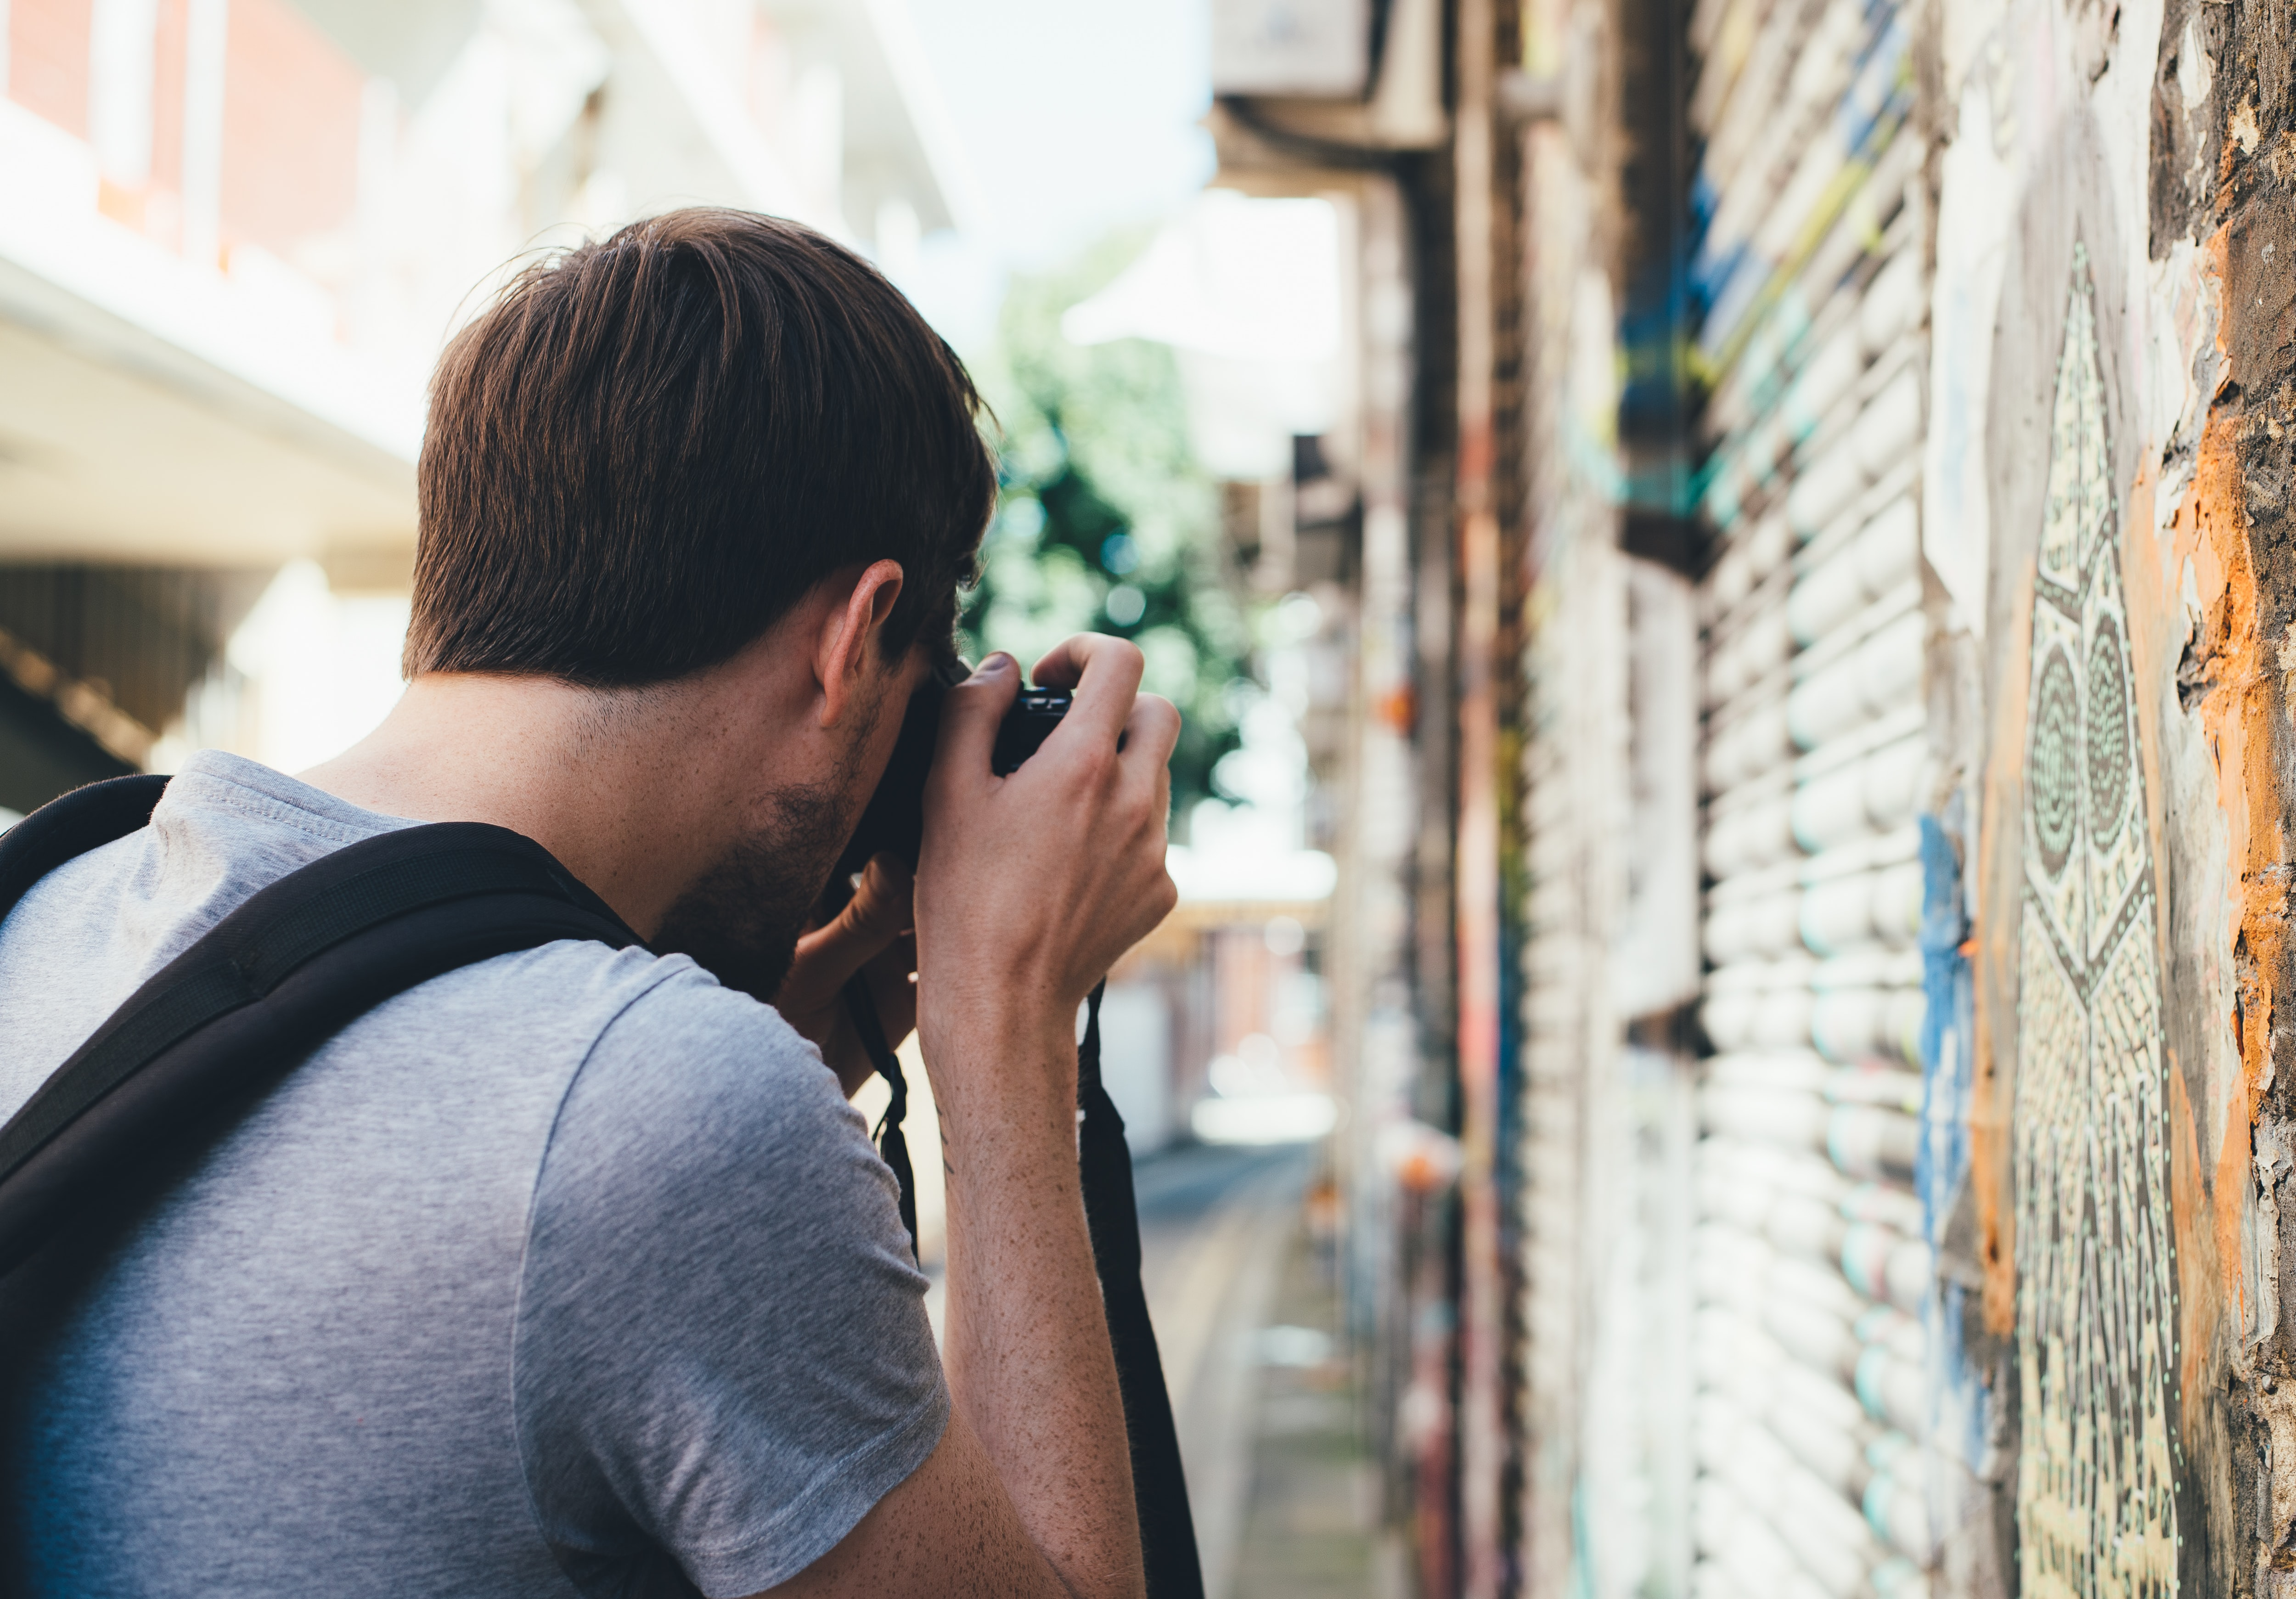 Man in Shoreditch wearing gray shirt and black backpack takes photo of graffiti street art on bright day